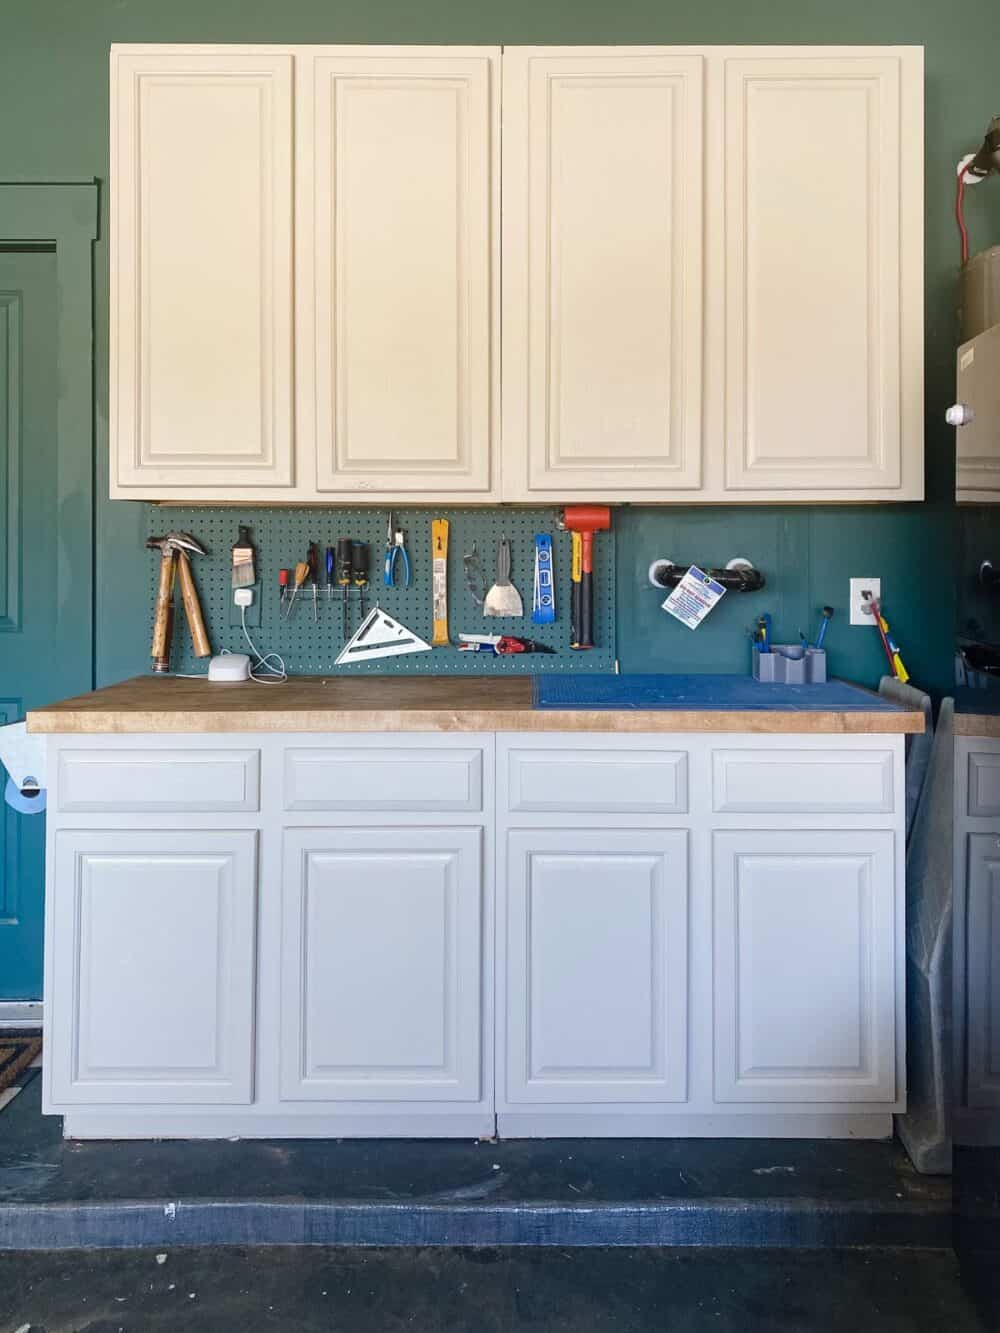 Garage cabinets with an organized pegboard between them